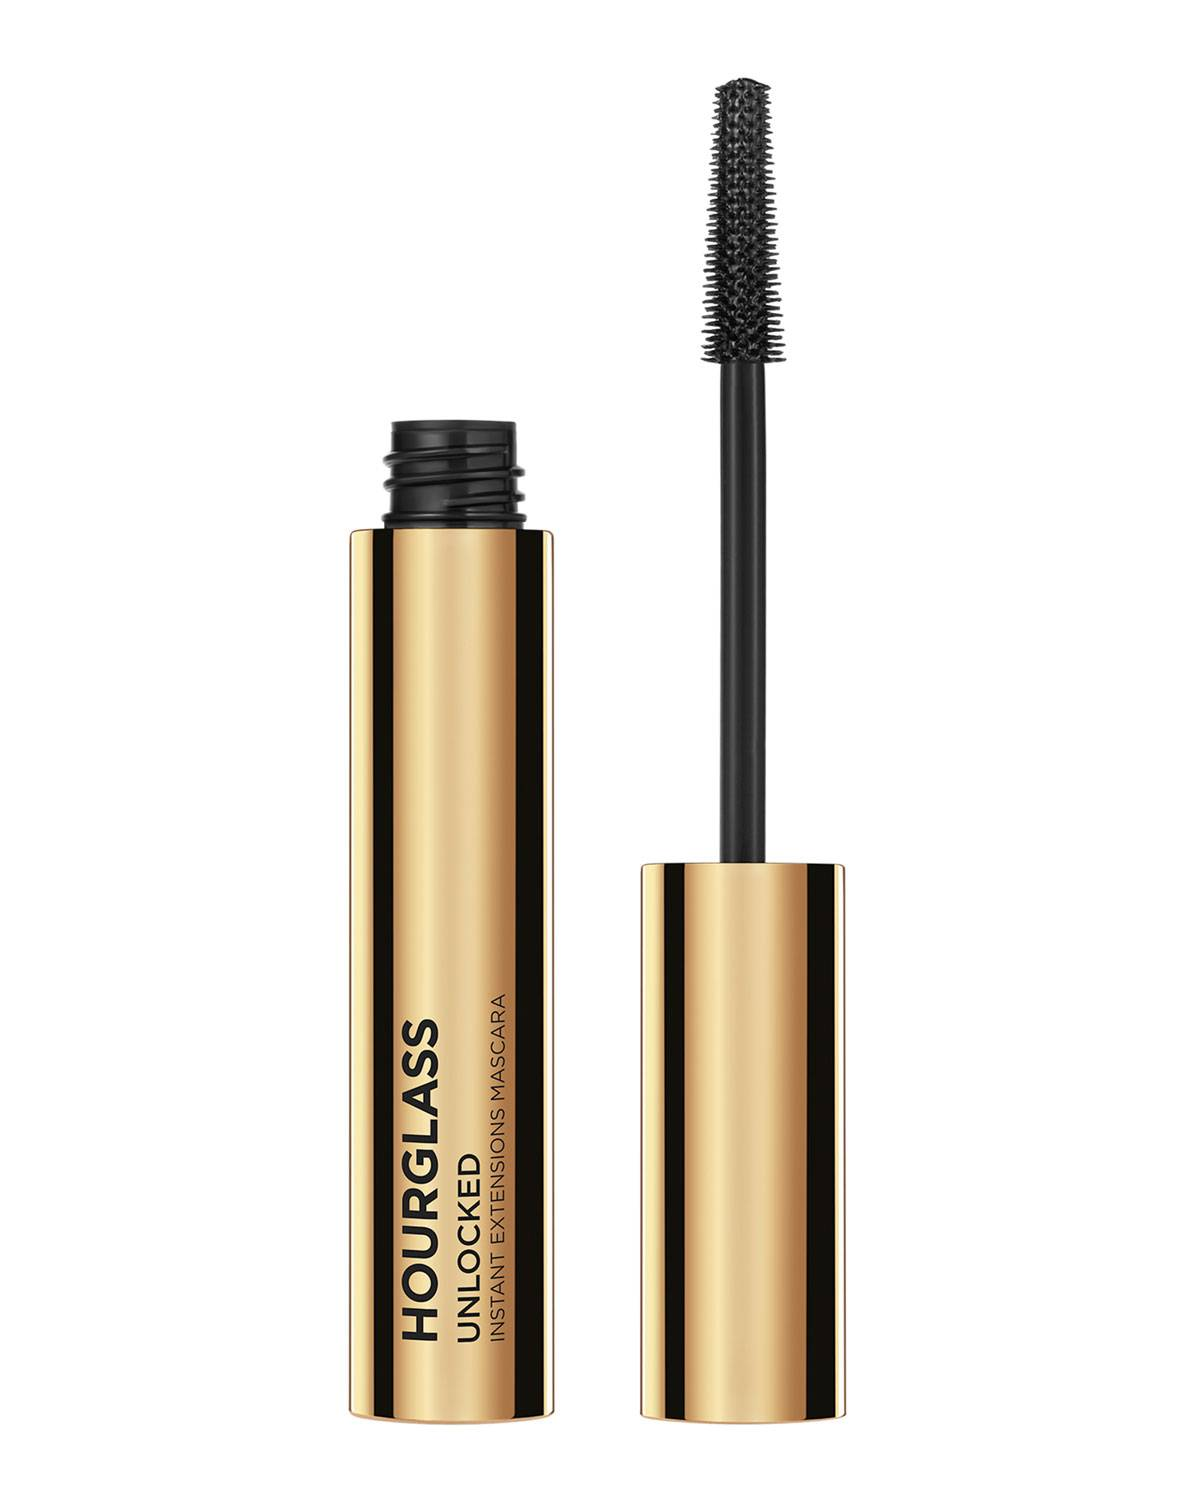 Hourglass Cosmetics Unlocked Instant Extensions Mascara